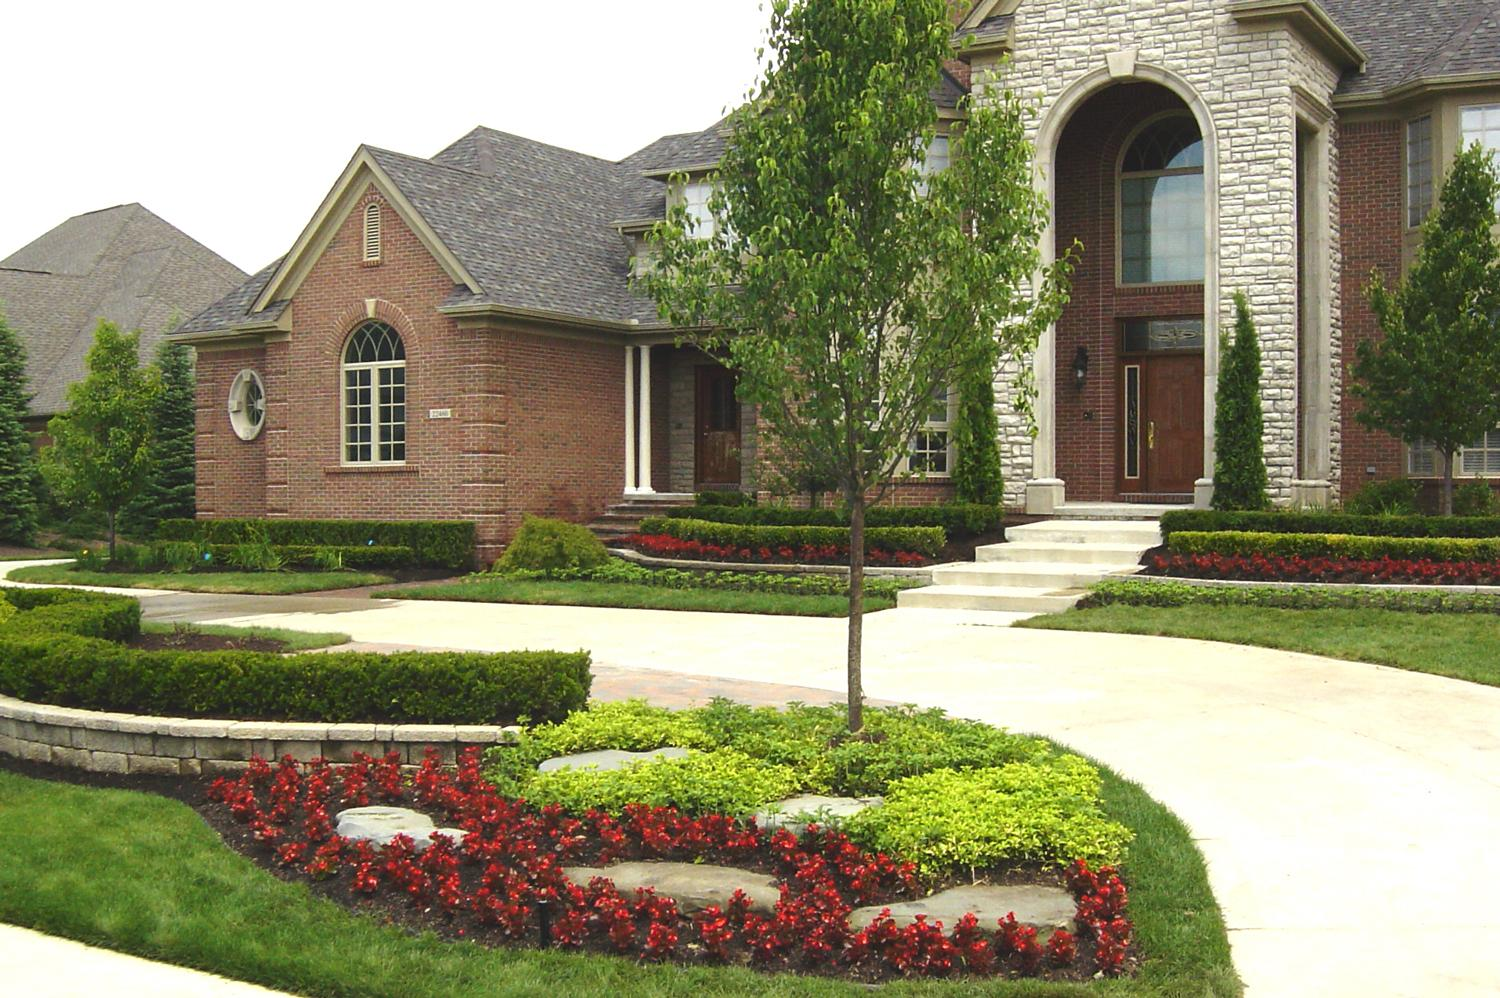 Simple Landscape: Ideas for landscaping front yard